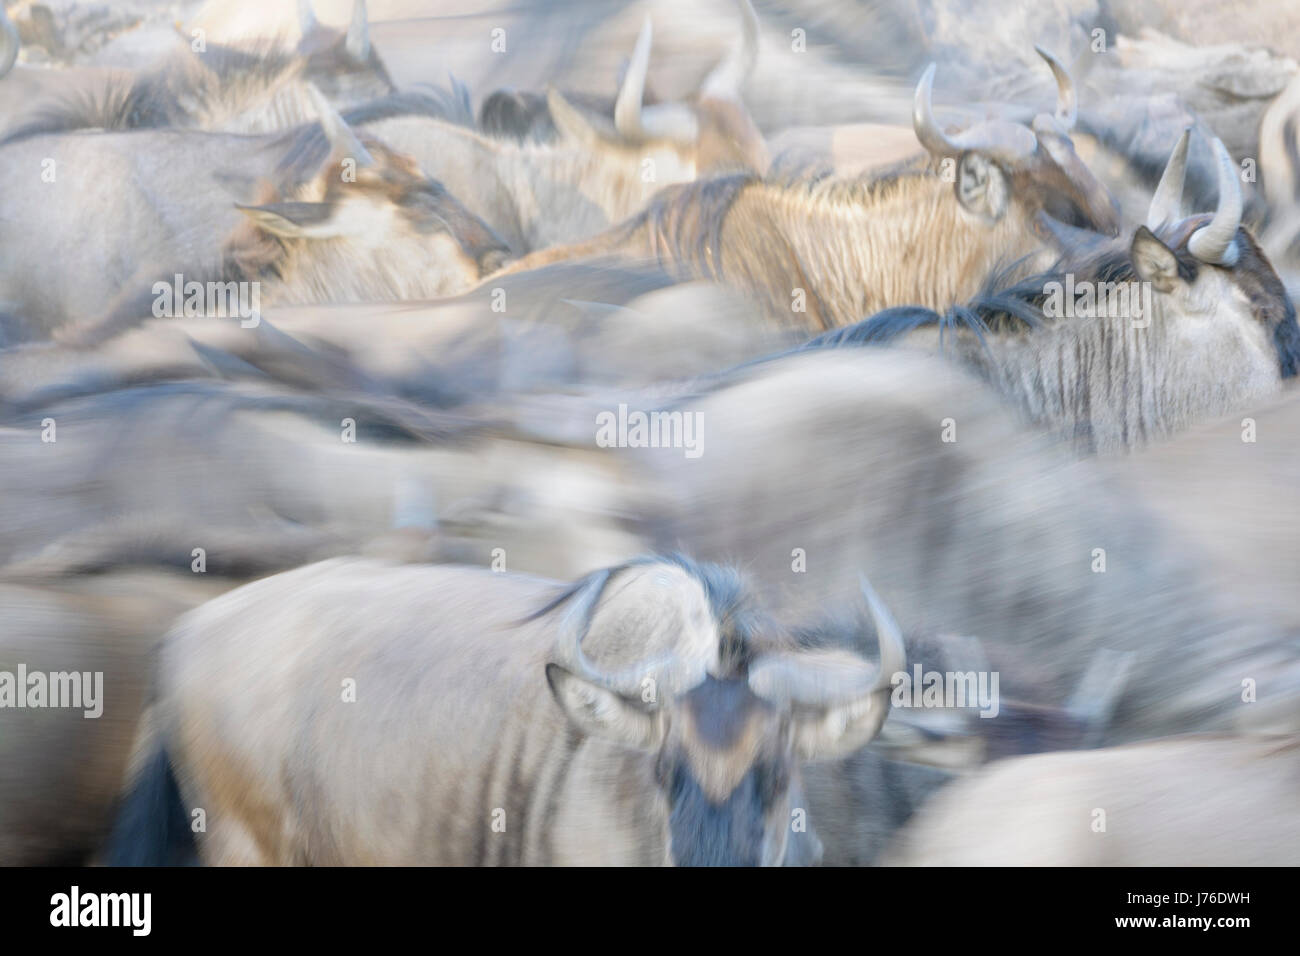 Wildebeest (Connochaetes taurinus), gnu, herd close up with motion blur, Serengeti national park, Tanzania - Stock Image